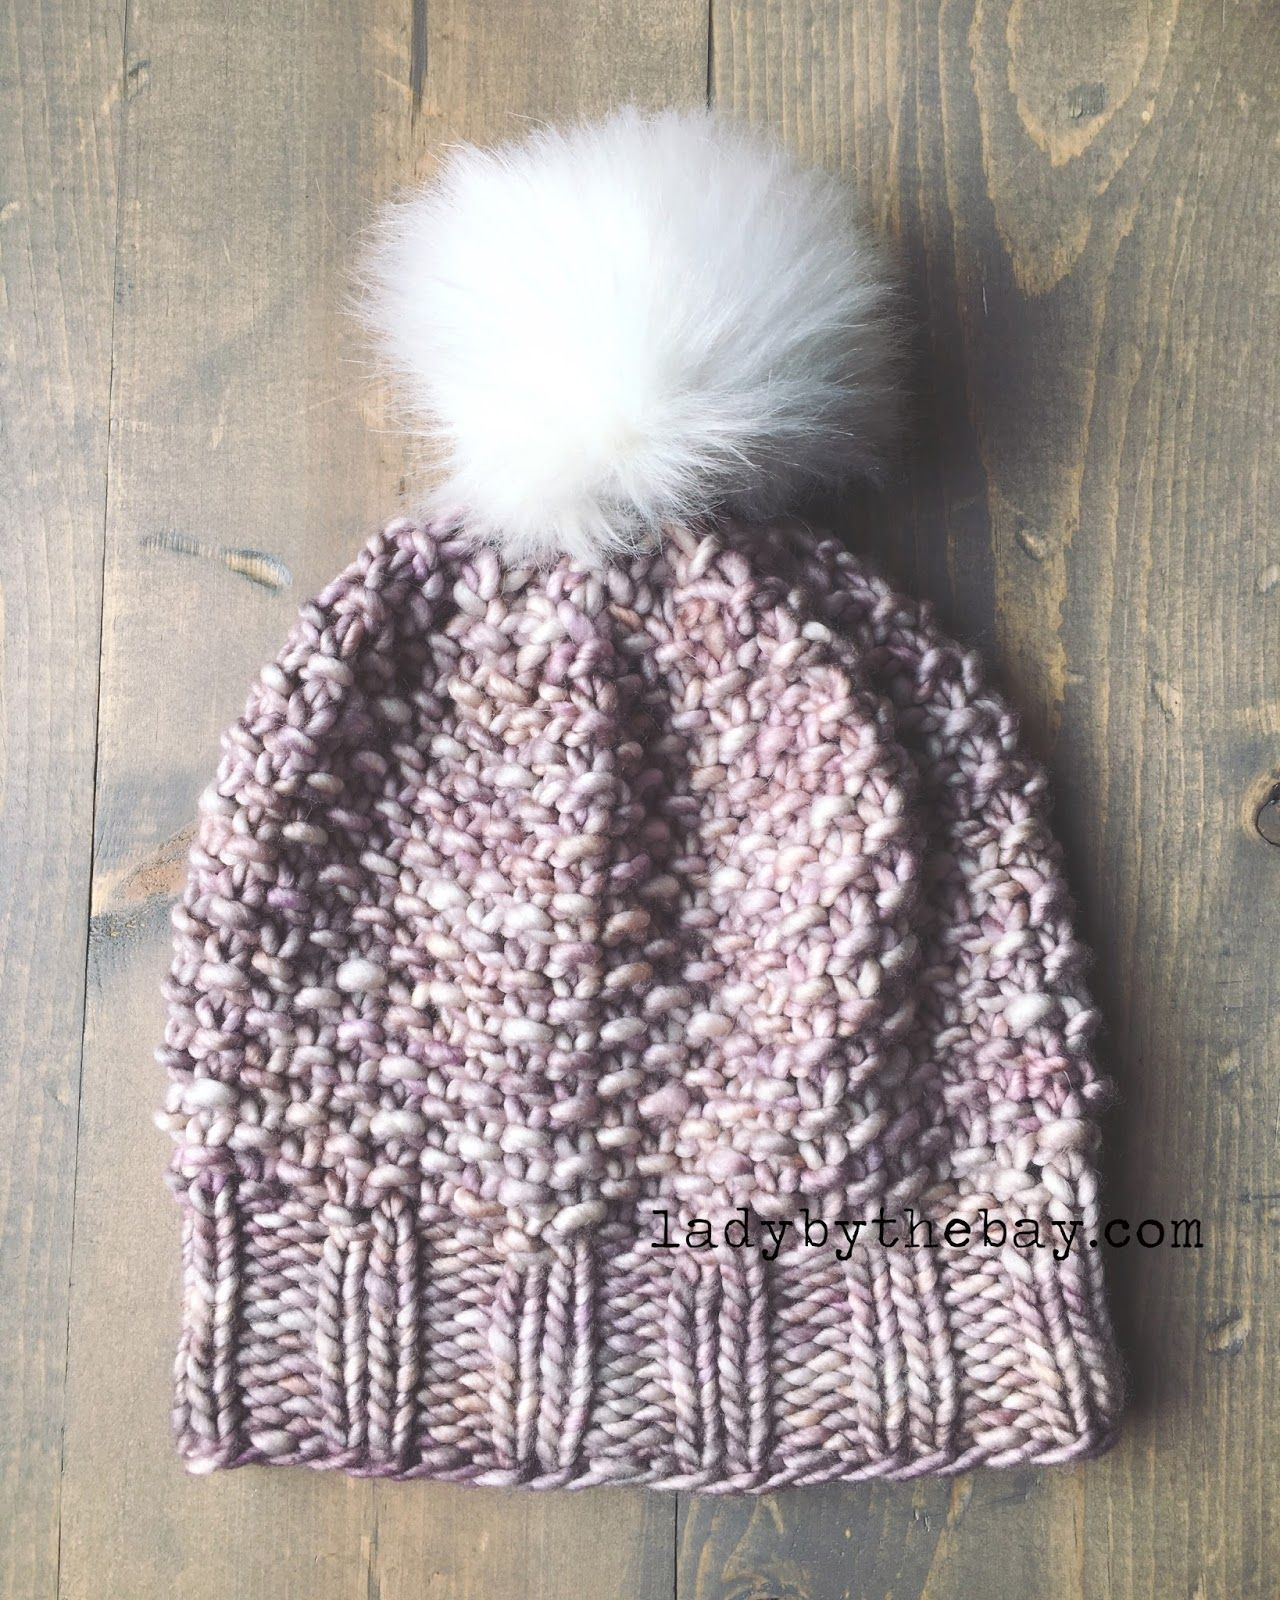 Seed/Moss Stitch Knitted Hat Pattern | Knitted hat patterns, Moss ...